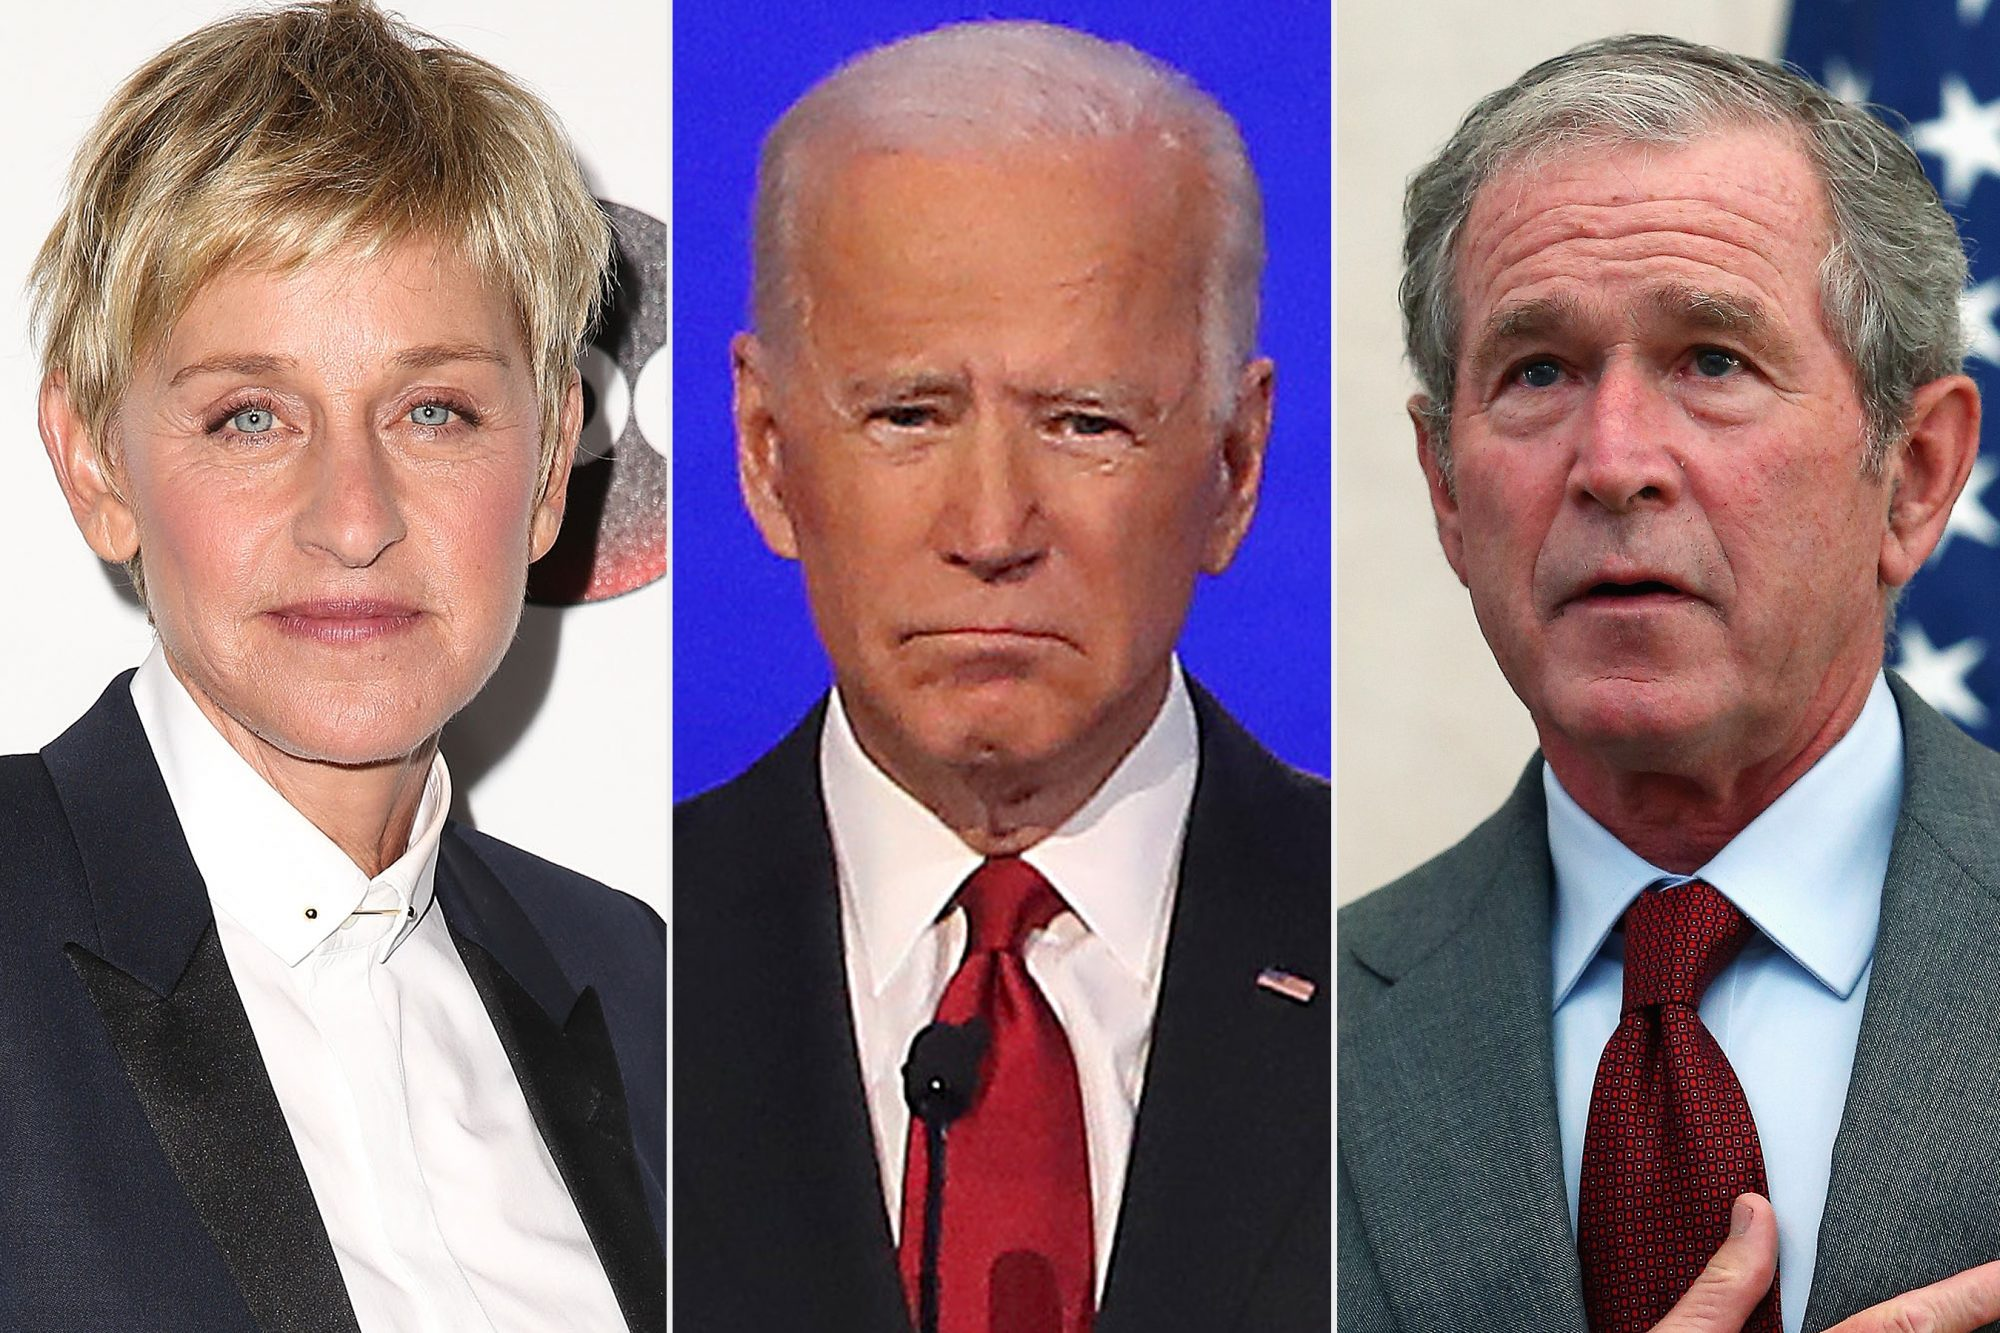 Ellen DeGeneres, Joe Biden, George W. Bush